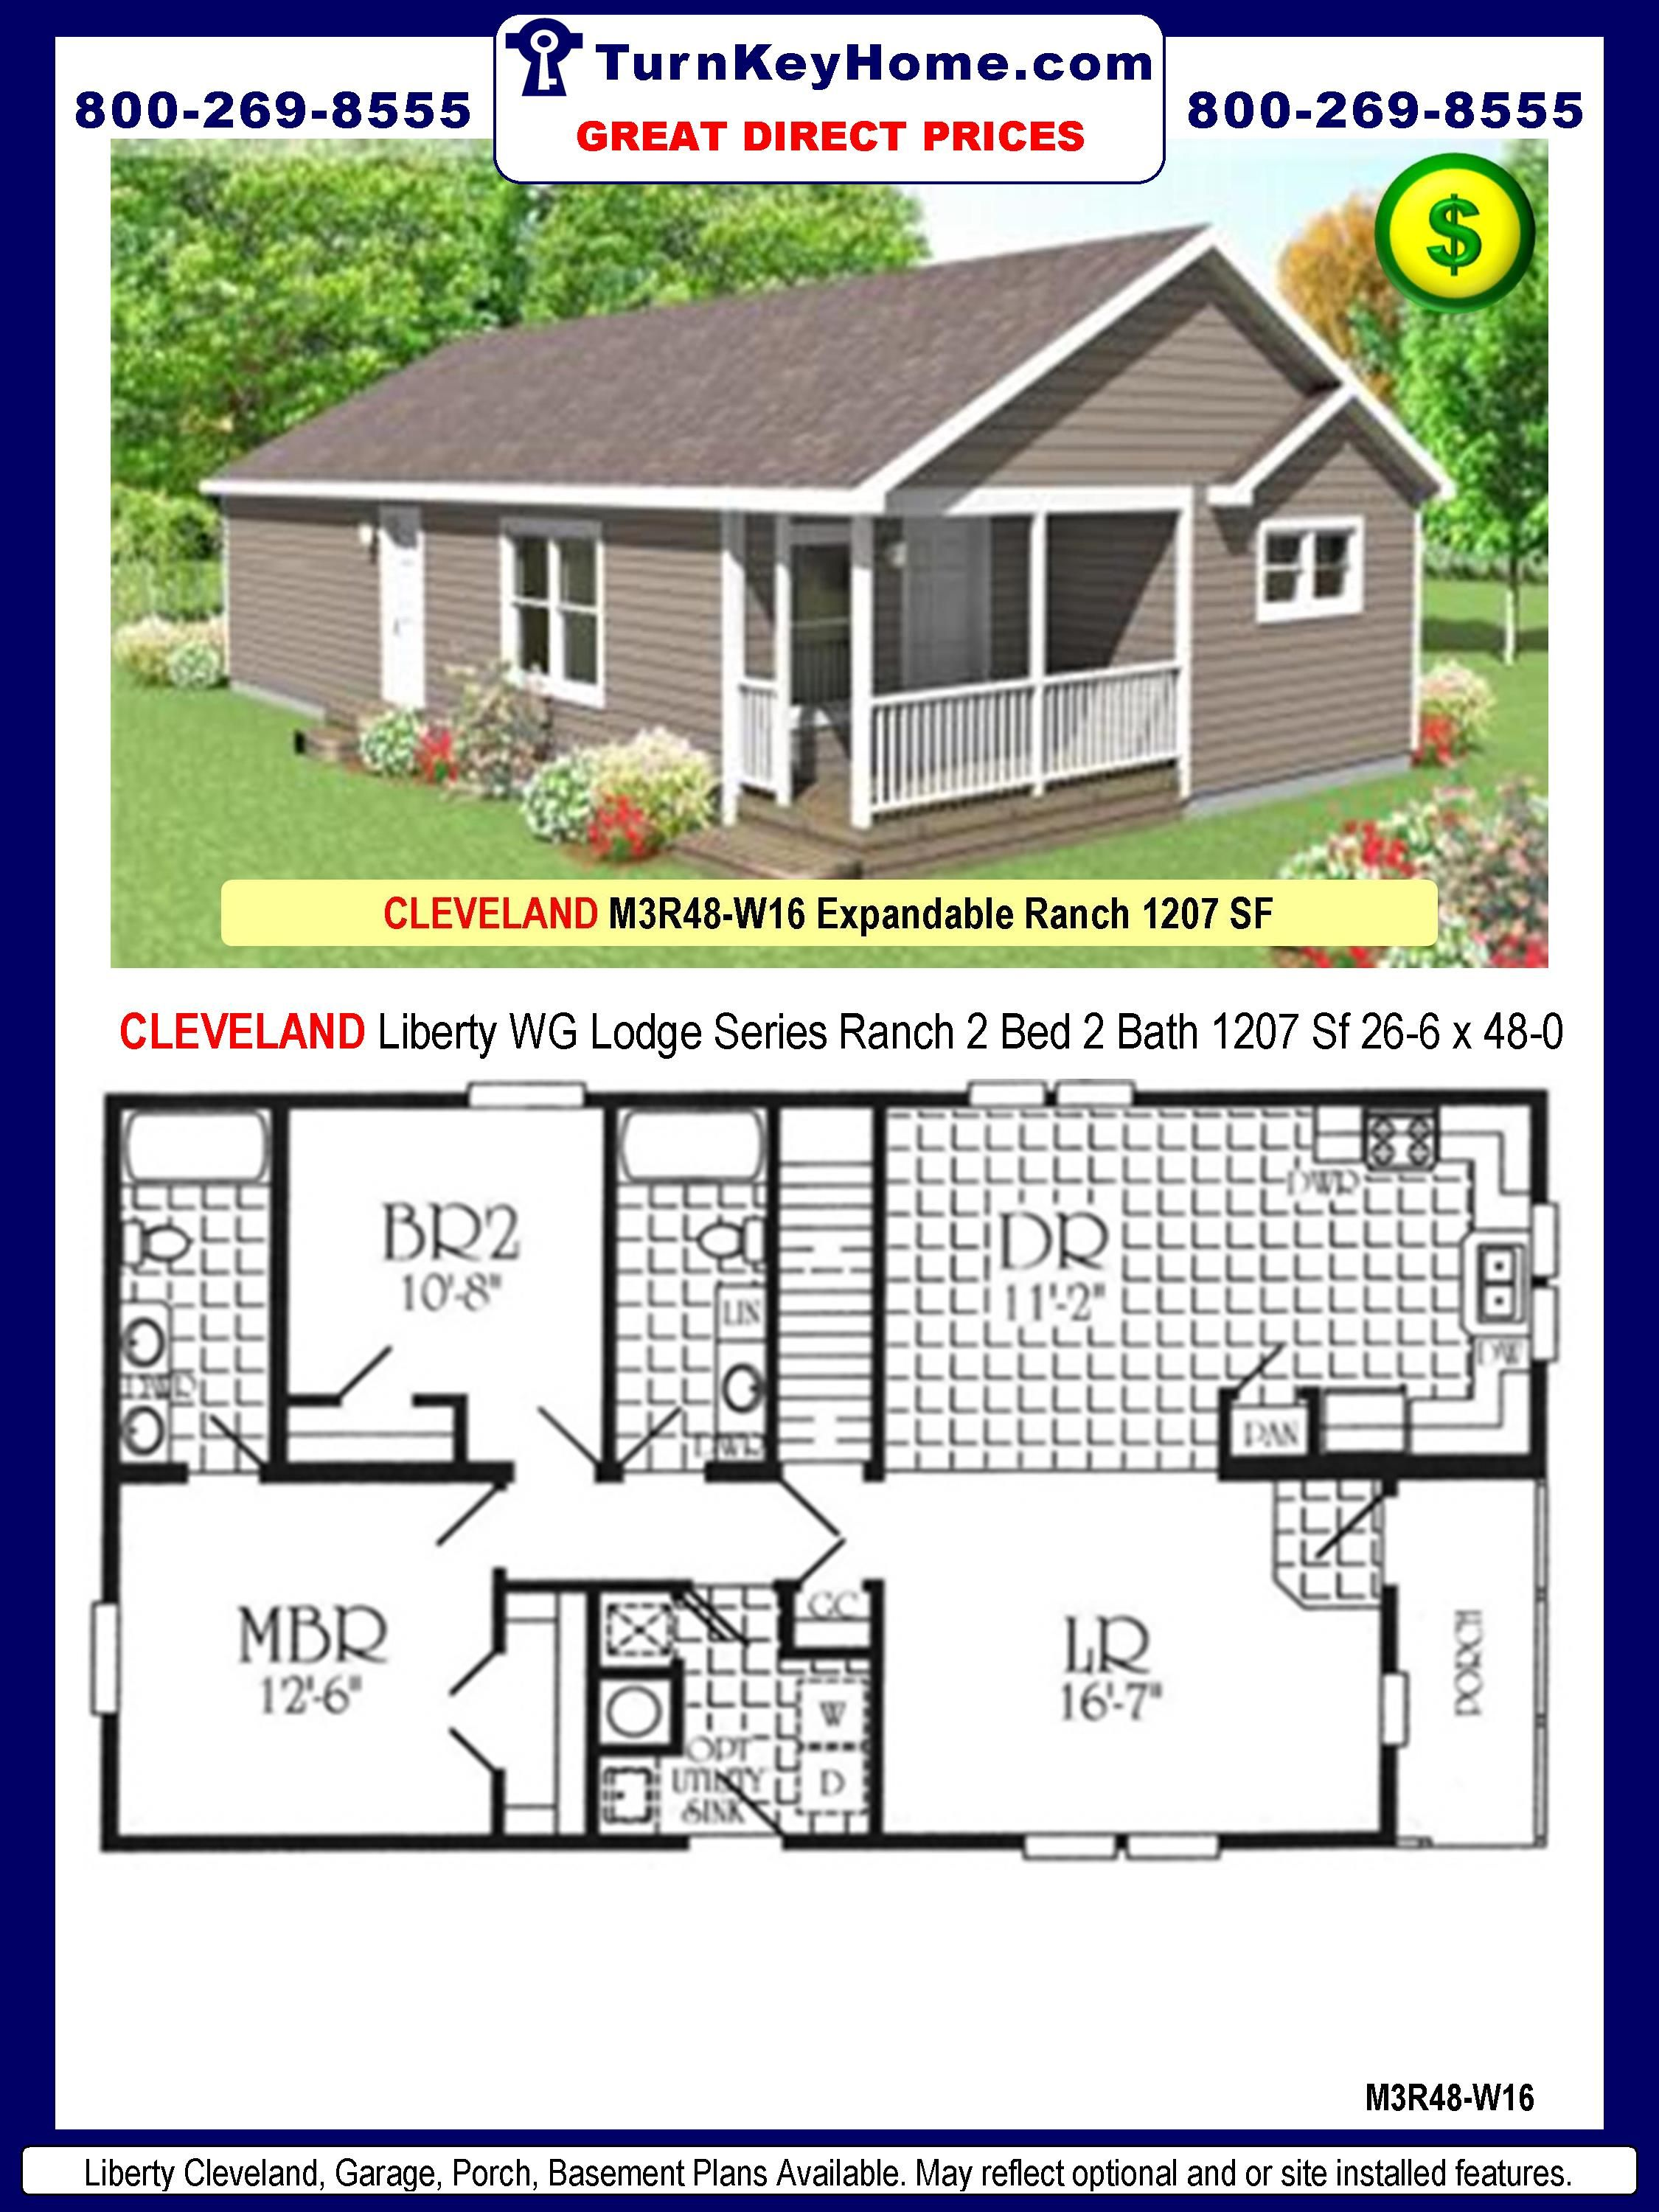 3 Bedroom 2 Bath manufactured home plans | Liberty Homes CLEVELAND ...